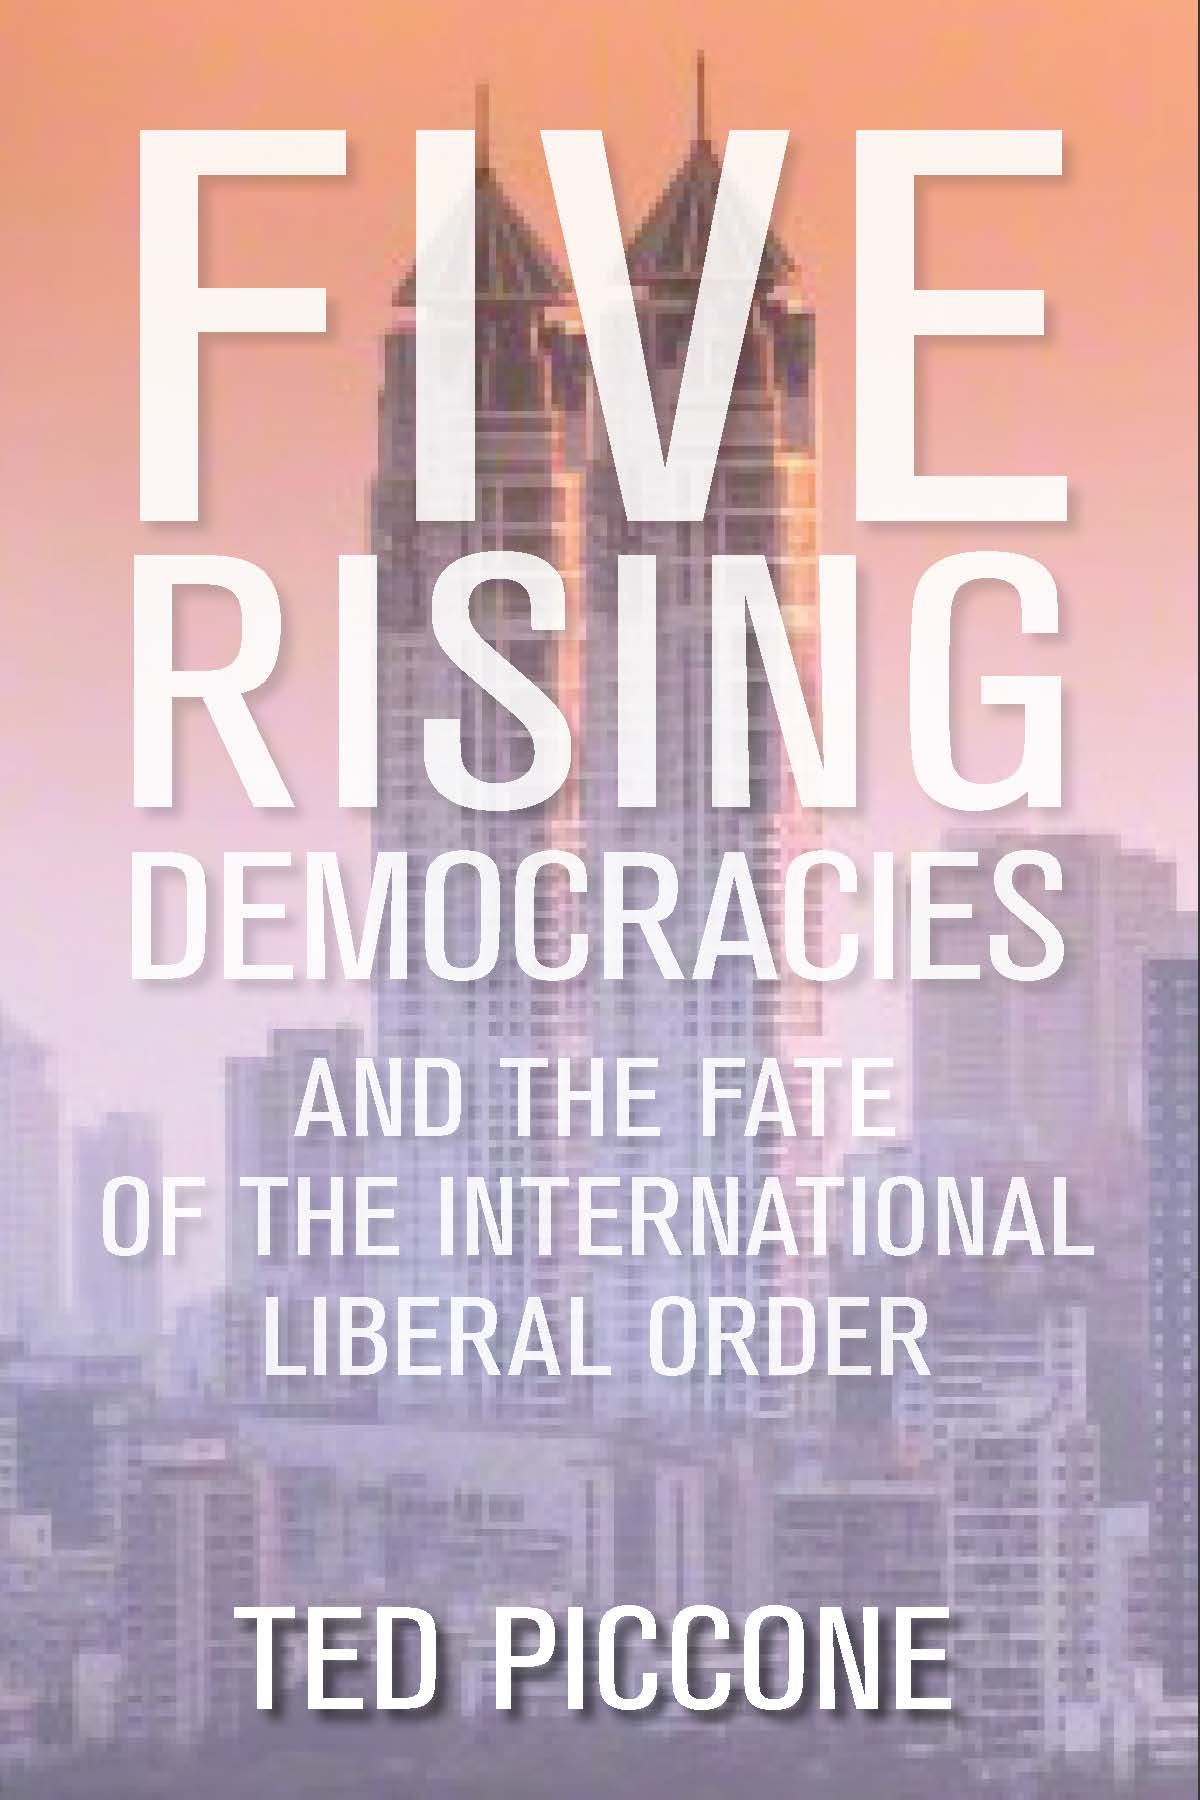 the marshall plan and the shaping of american strategy brookings five rising democracies